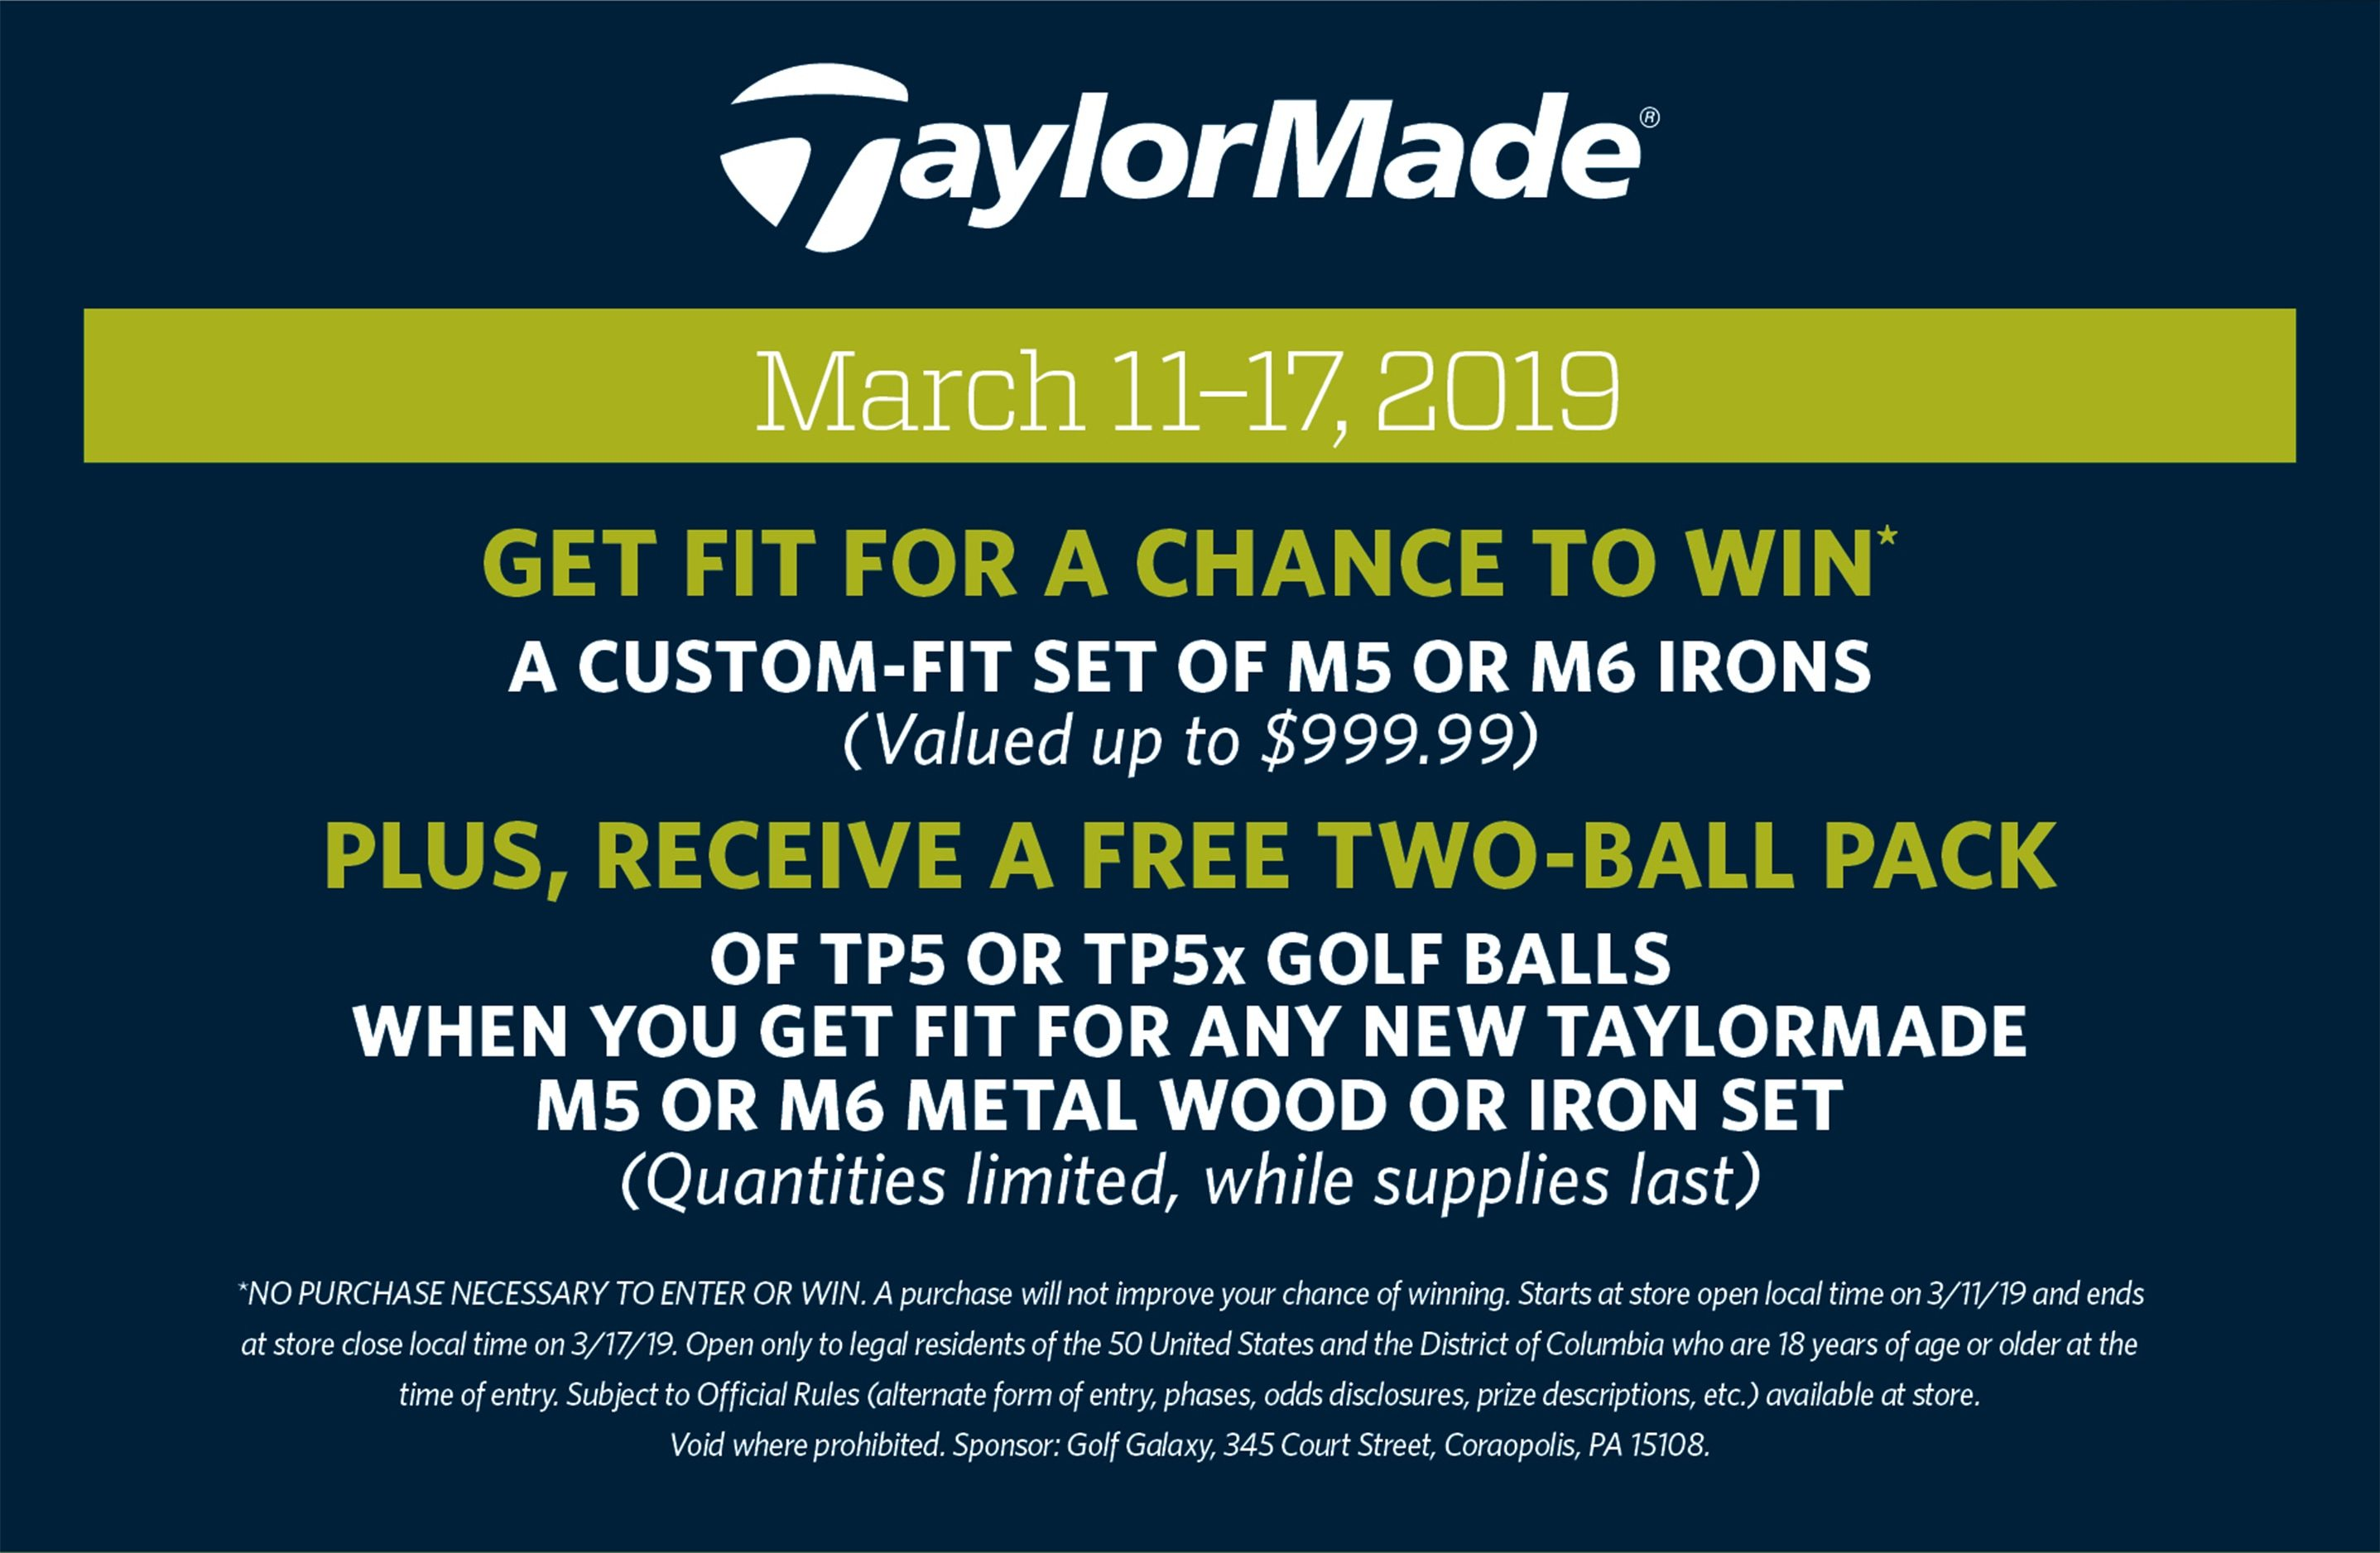 TaylorMade | March 11–17, 2019 | GET FIT FOR A CHANCE TO WIN* A custom-fit set of M5 or M6 Irons (Valued up to $999.99) PLUS, receive a FREE two-ball pack of TP5 or TP5x golf balls When you get fit for any new TaylorMade M5 or M6 metal wood or iron set (Quantities limited, while supplies last) *NO PURCHASE NECESSARY TO ENTER OR WIN. A purchase will not improve your chance of winning. Starts at store open local time on 3/11/19 and ends at store close local time on 3/17/19. Open only to legal residents of the 50 United States and the District of Columbia who are 18 years of age or older at the time of entry. Subject to Official Rules (alternate form of entry, phases, odds disclosures, prize descriptions, etc.) available at store. Void where prohibited. Sponsor: Golf Galaxy, 345 Court Street, Coraopolis, PA 15108.